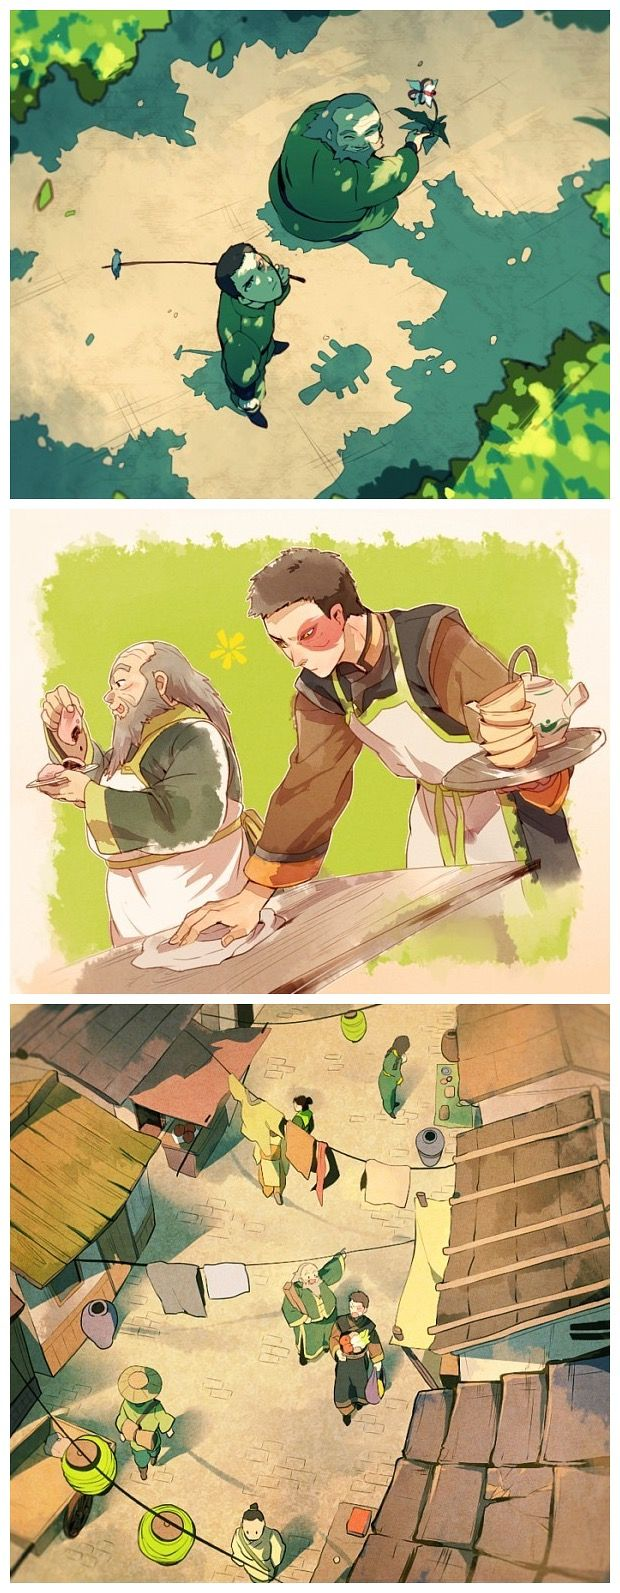 Zuko and Uncle Iroh in Ba Sing Se by Ashelia